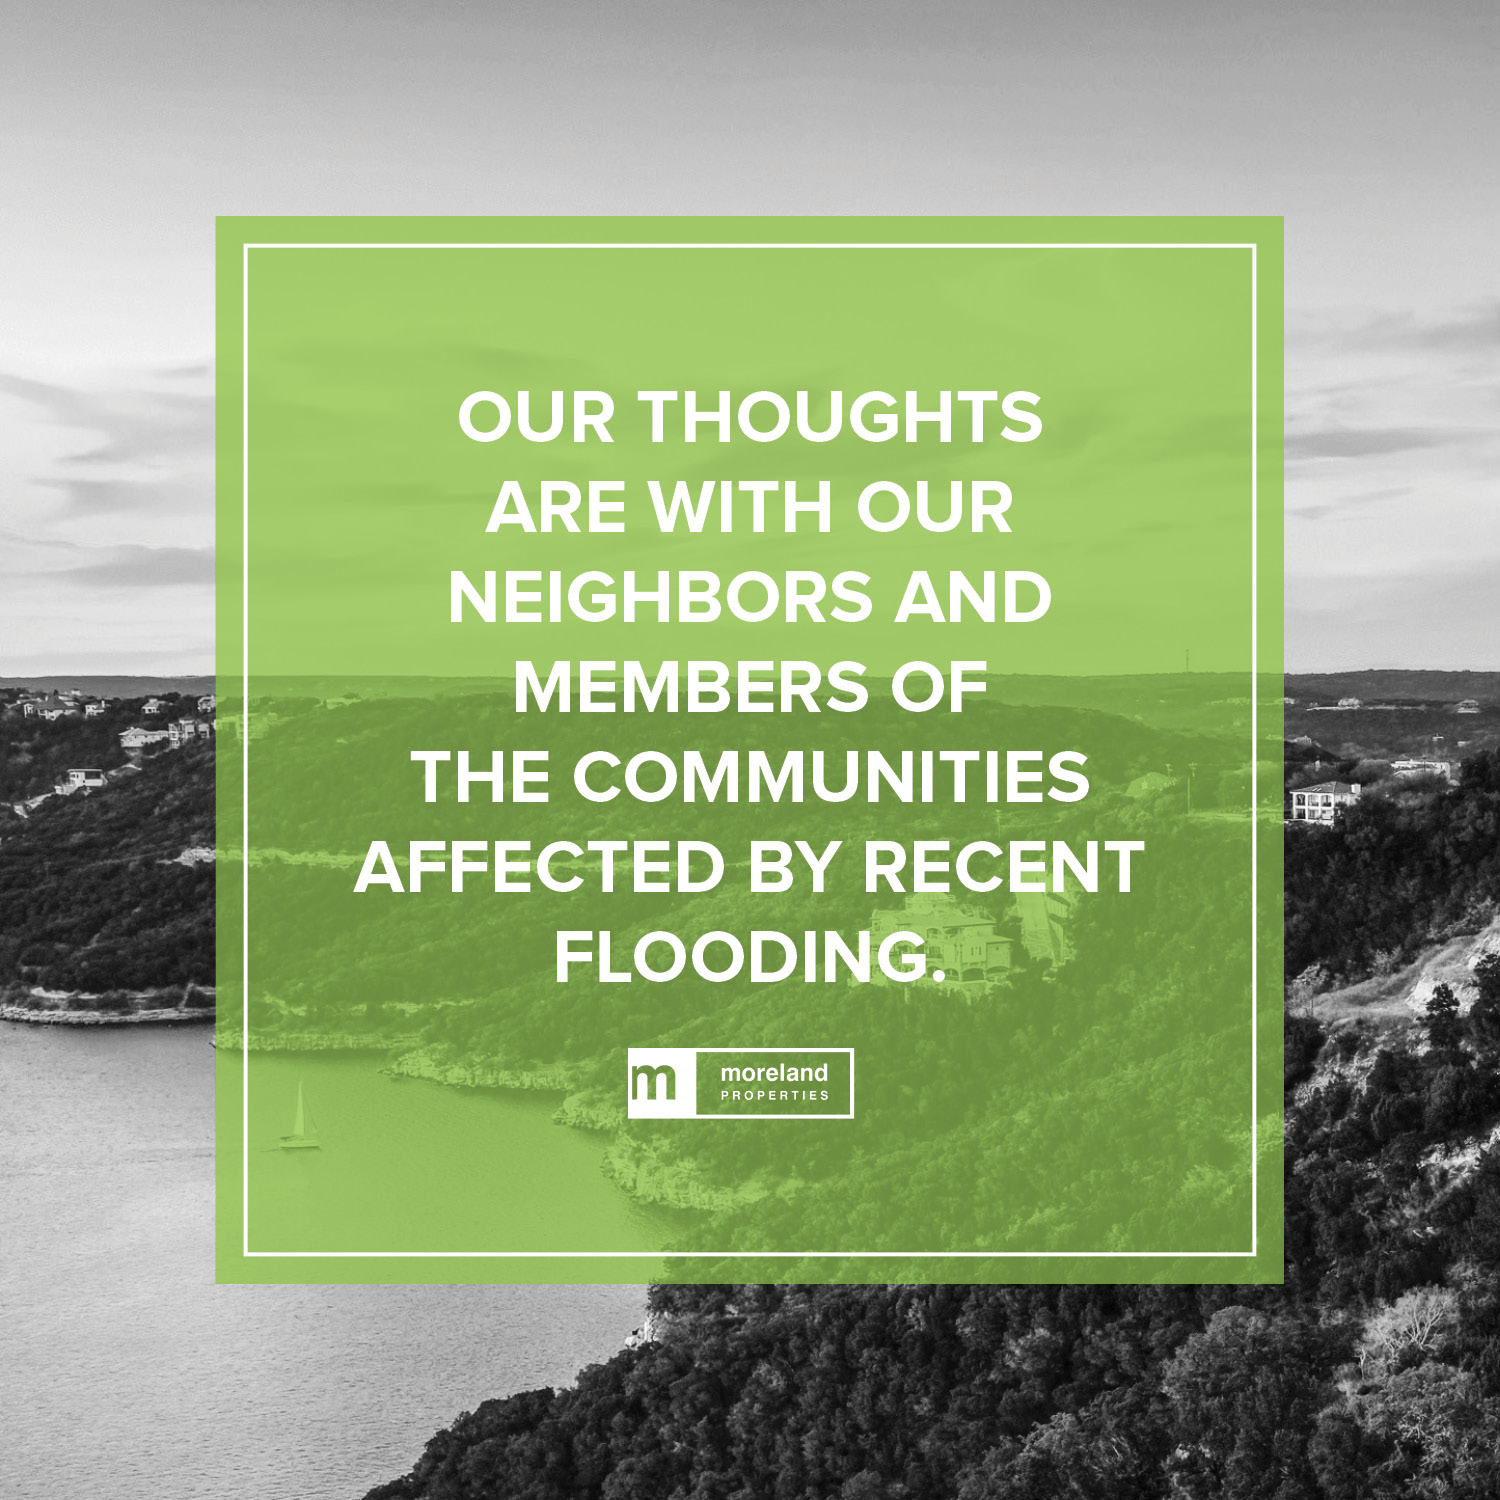 To learn more about the Austin area flooding, visit the  Austin American Statesman website.